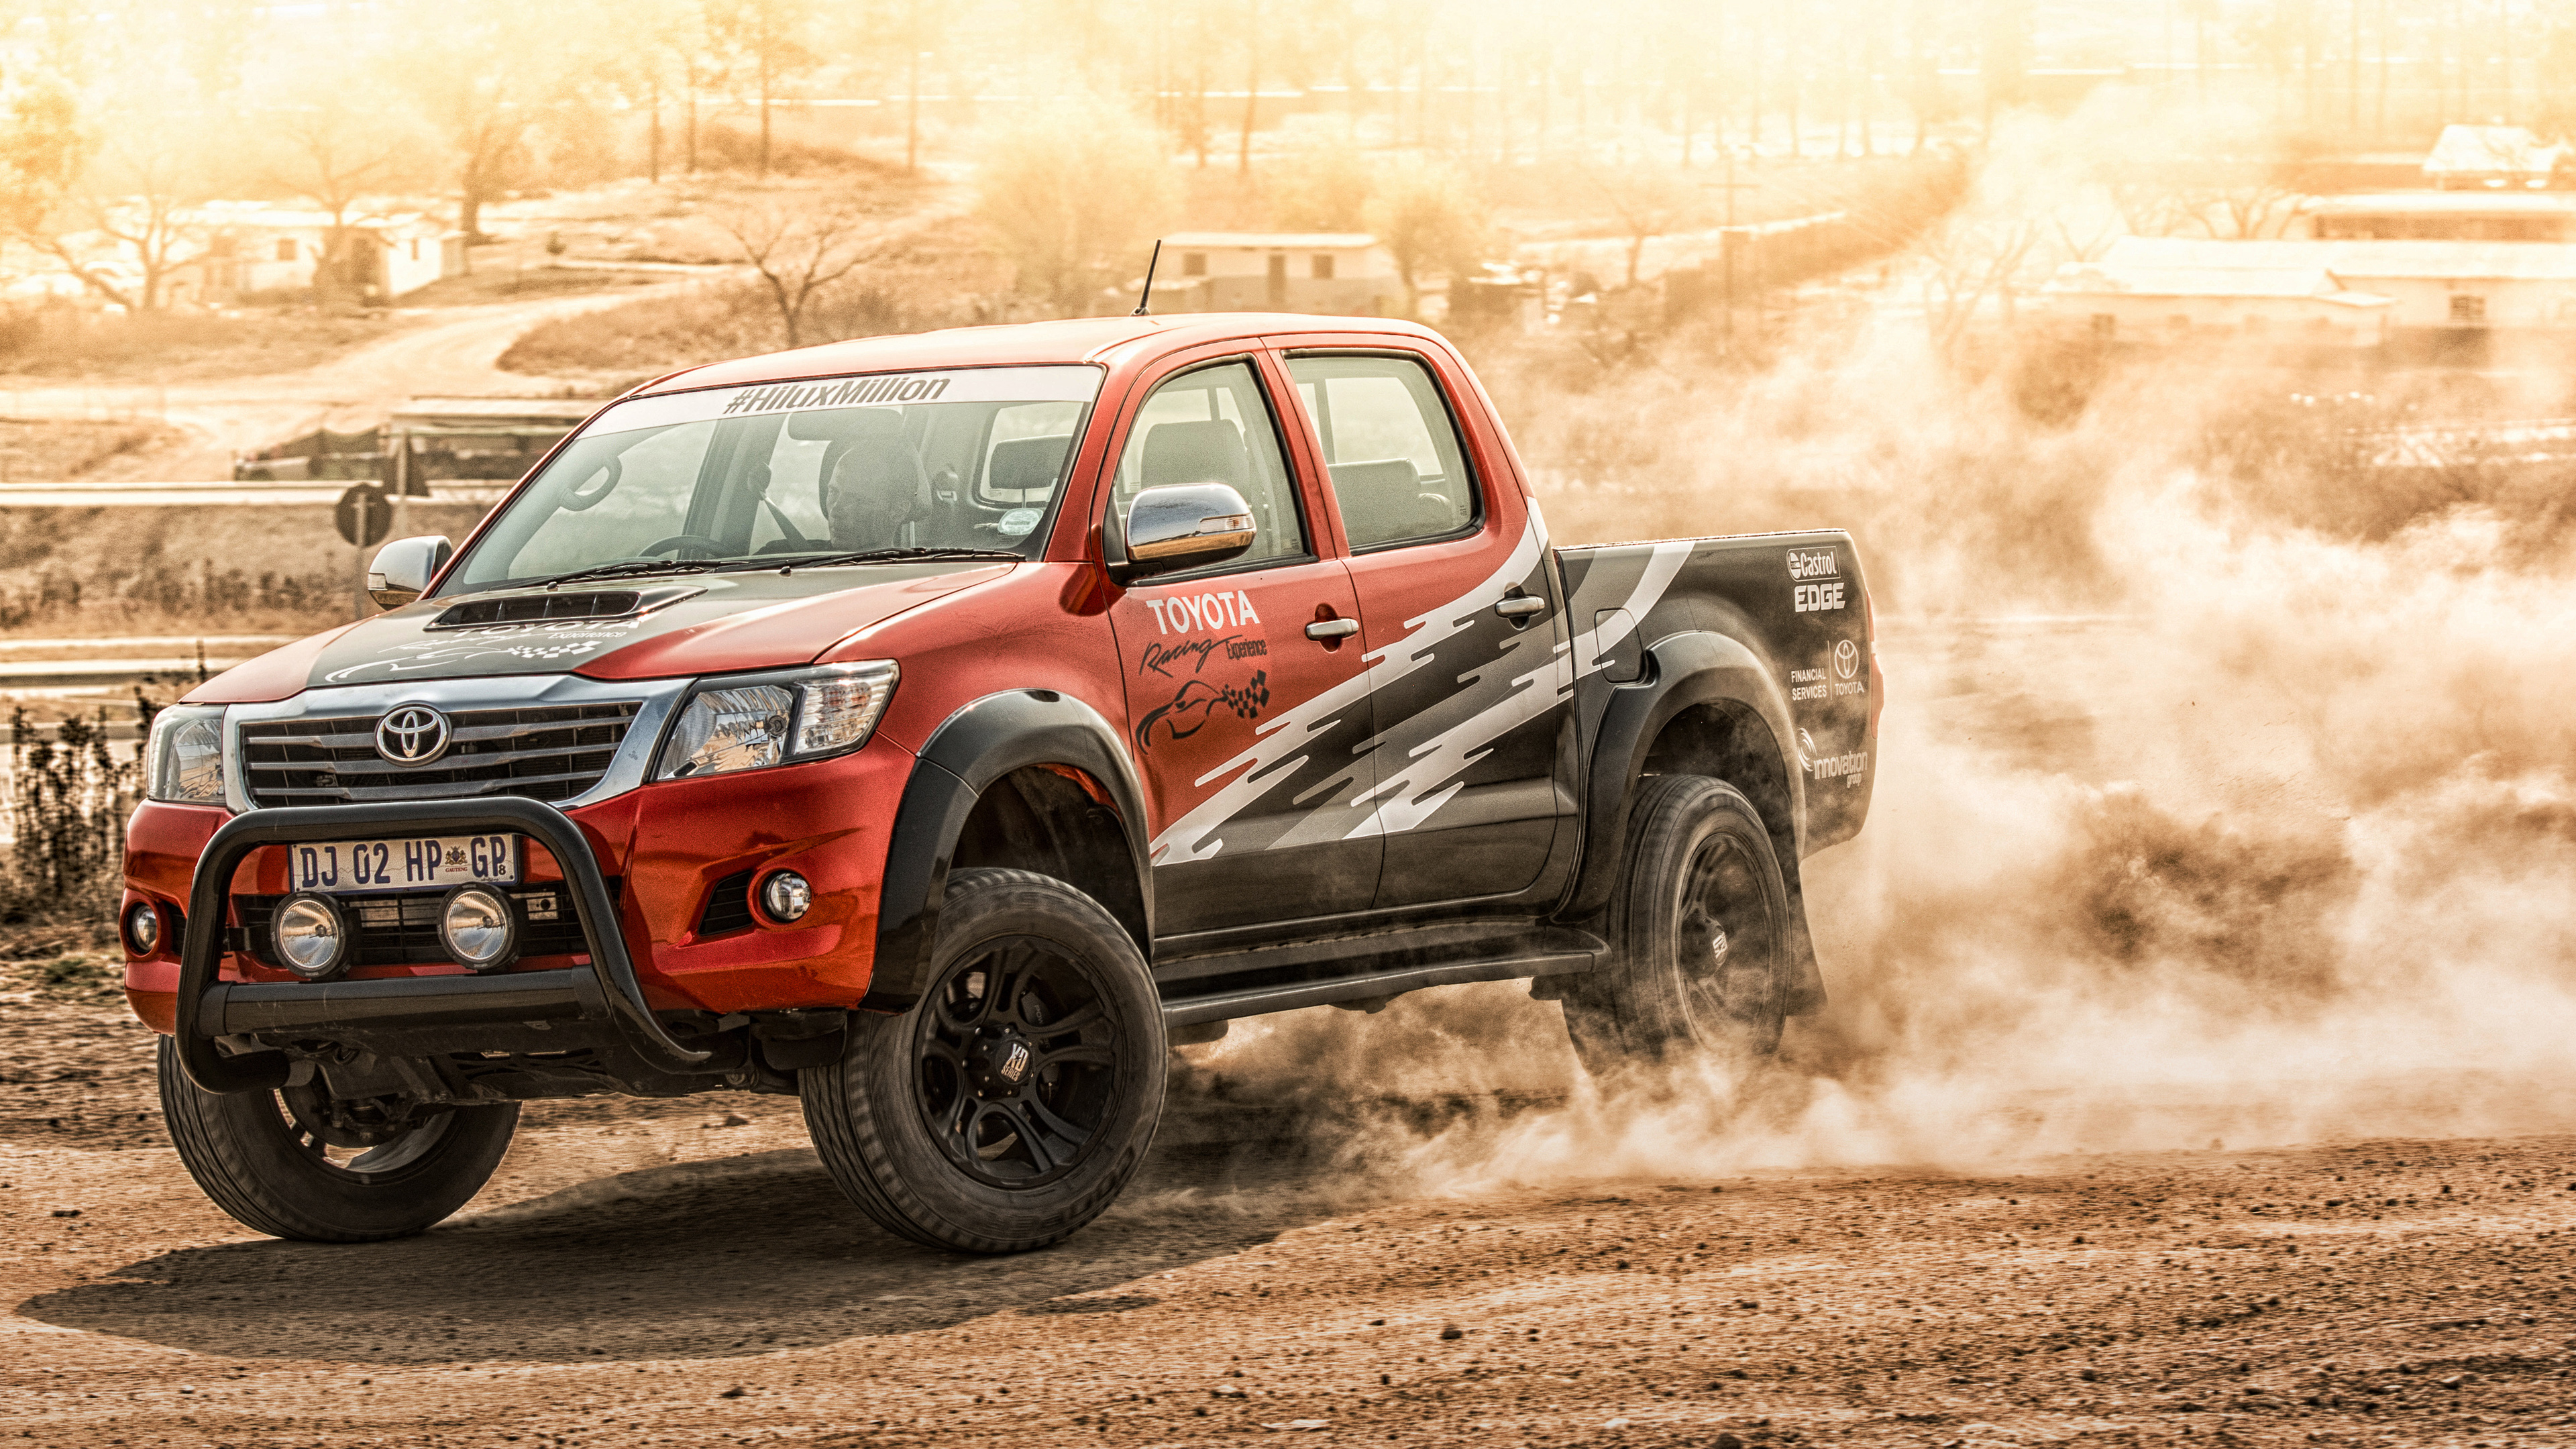 Toyota Hilux 2015 Wallpaper Hd Car Wallpapers Id 5714